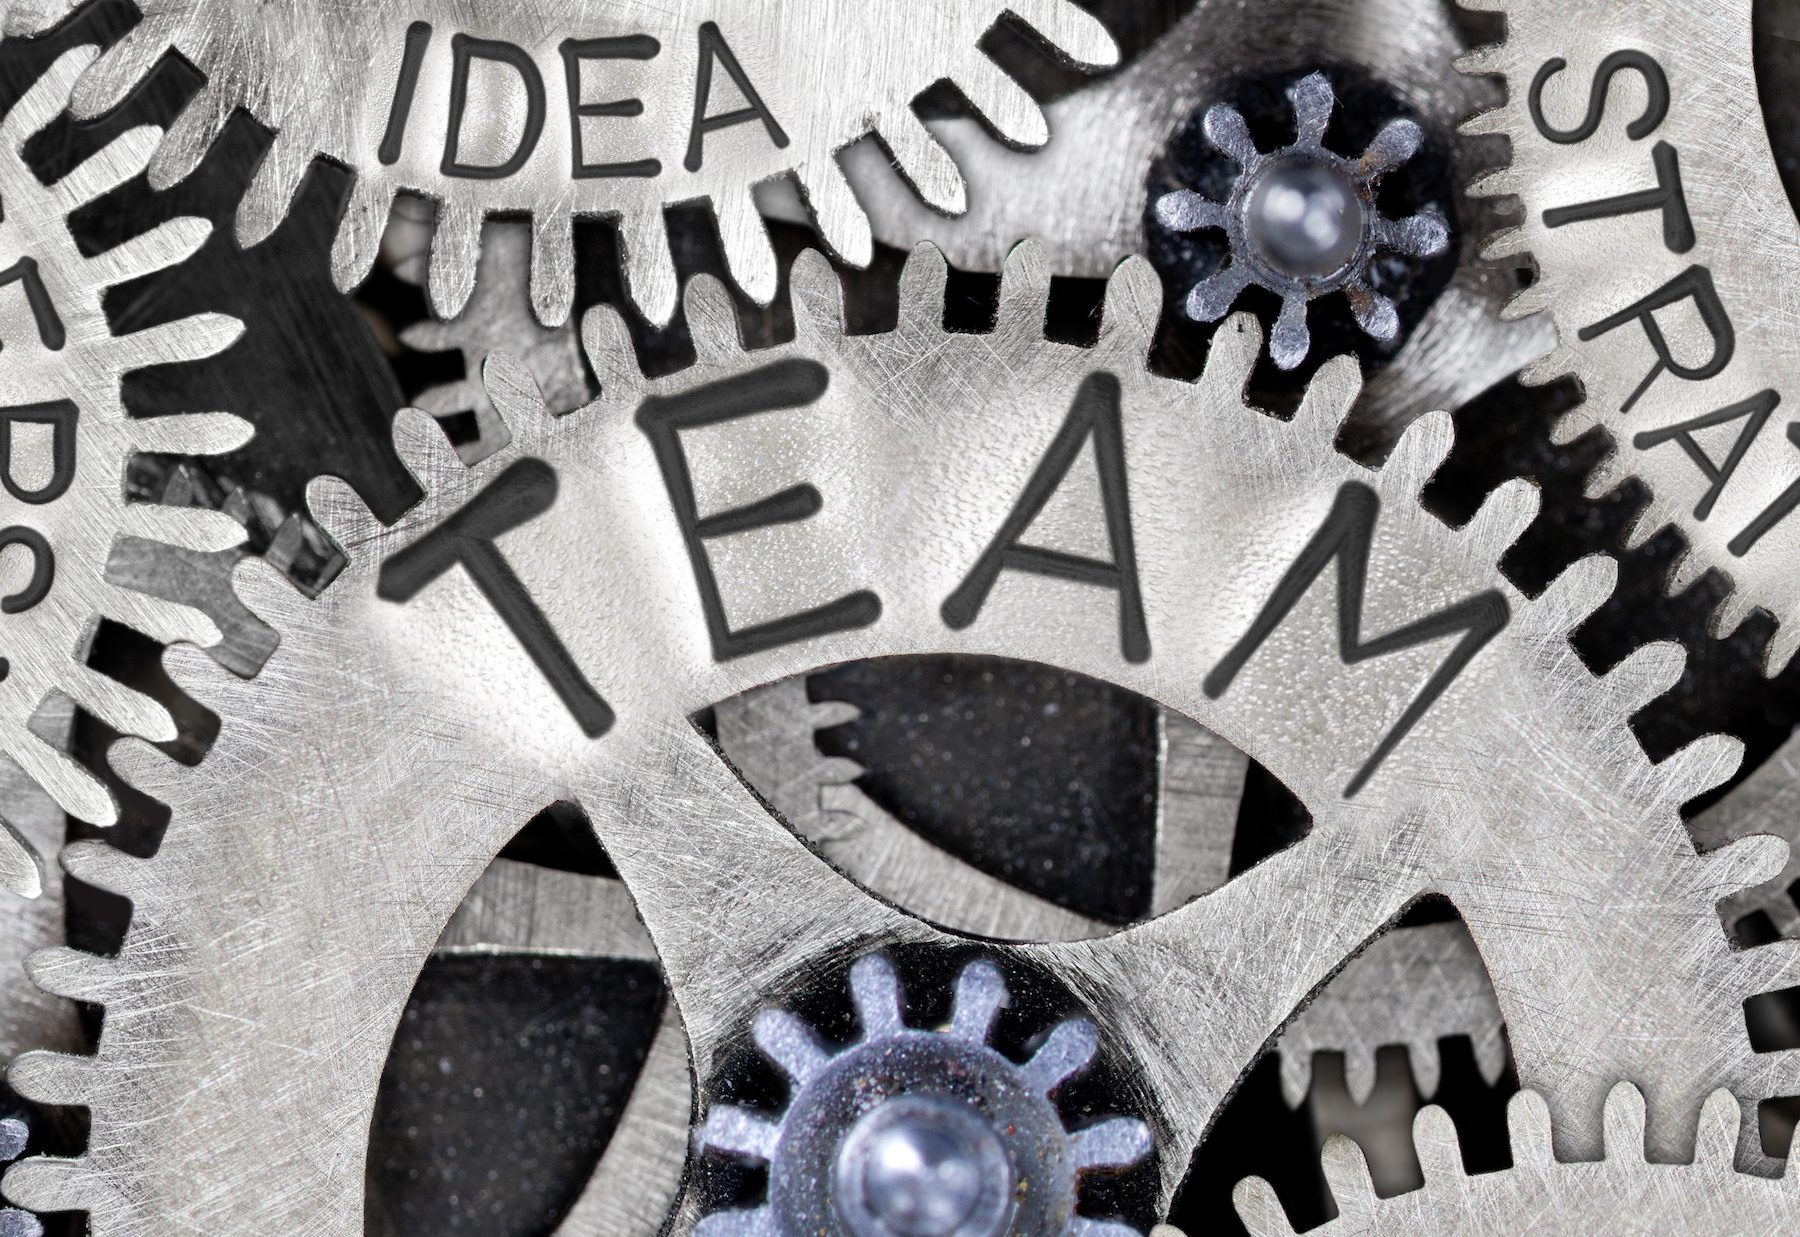 Federal Contractors: Team Up for the Benefits While Avoiding the Risks